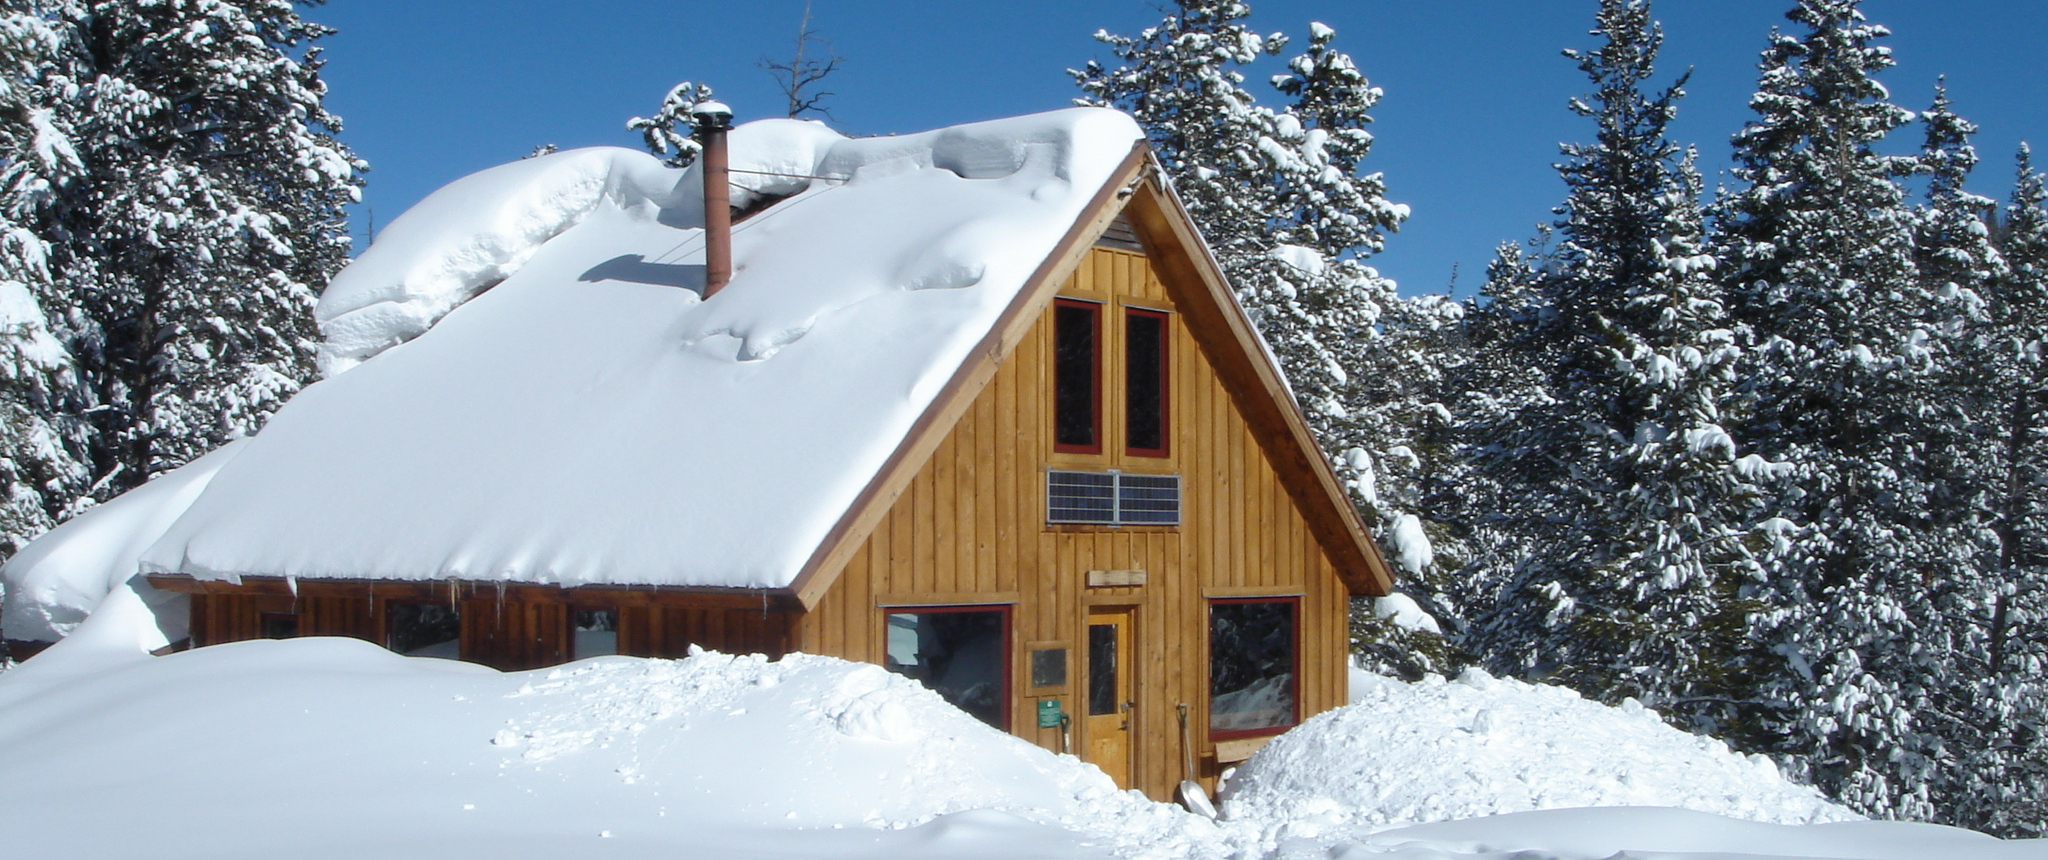 McNamara Hut buried in snow